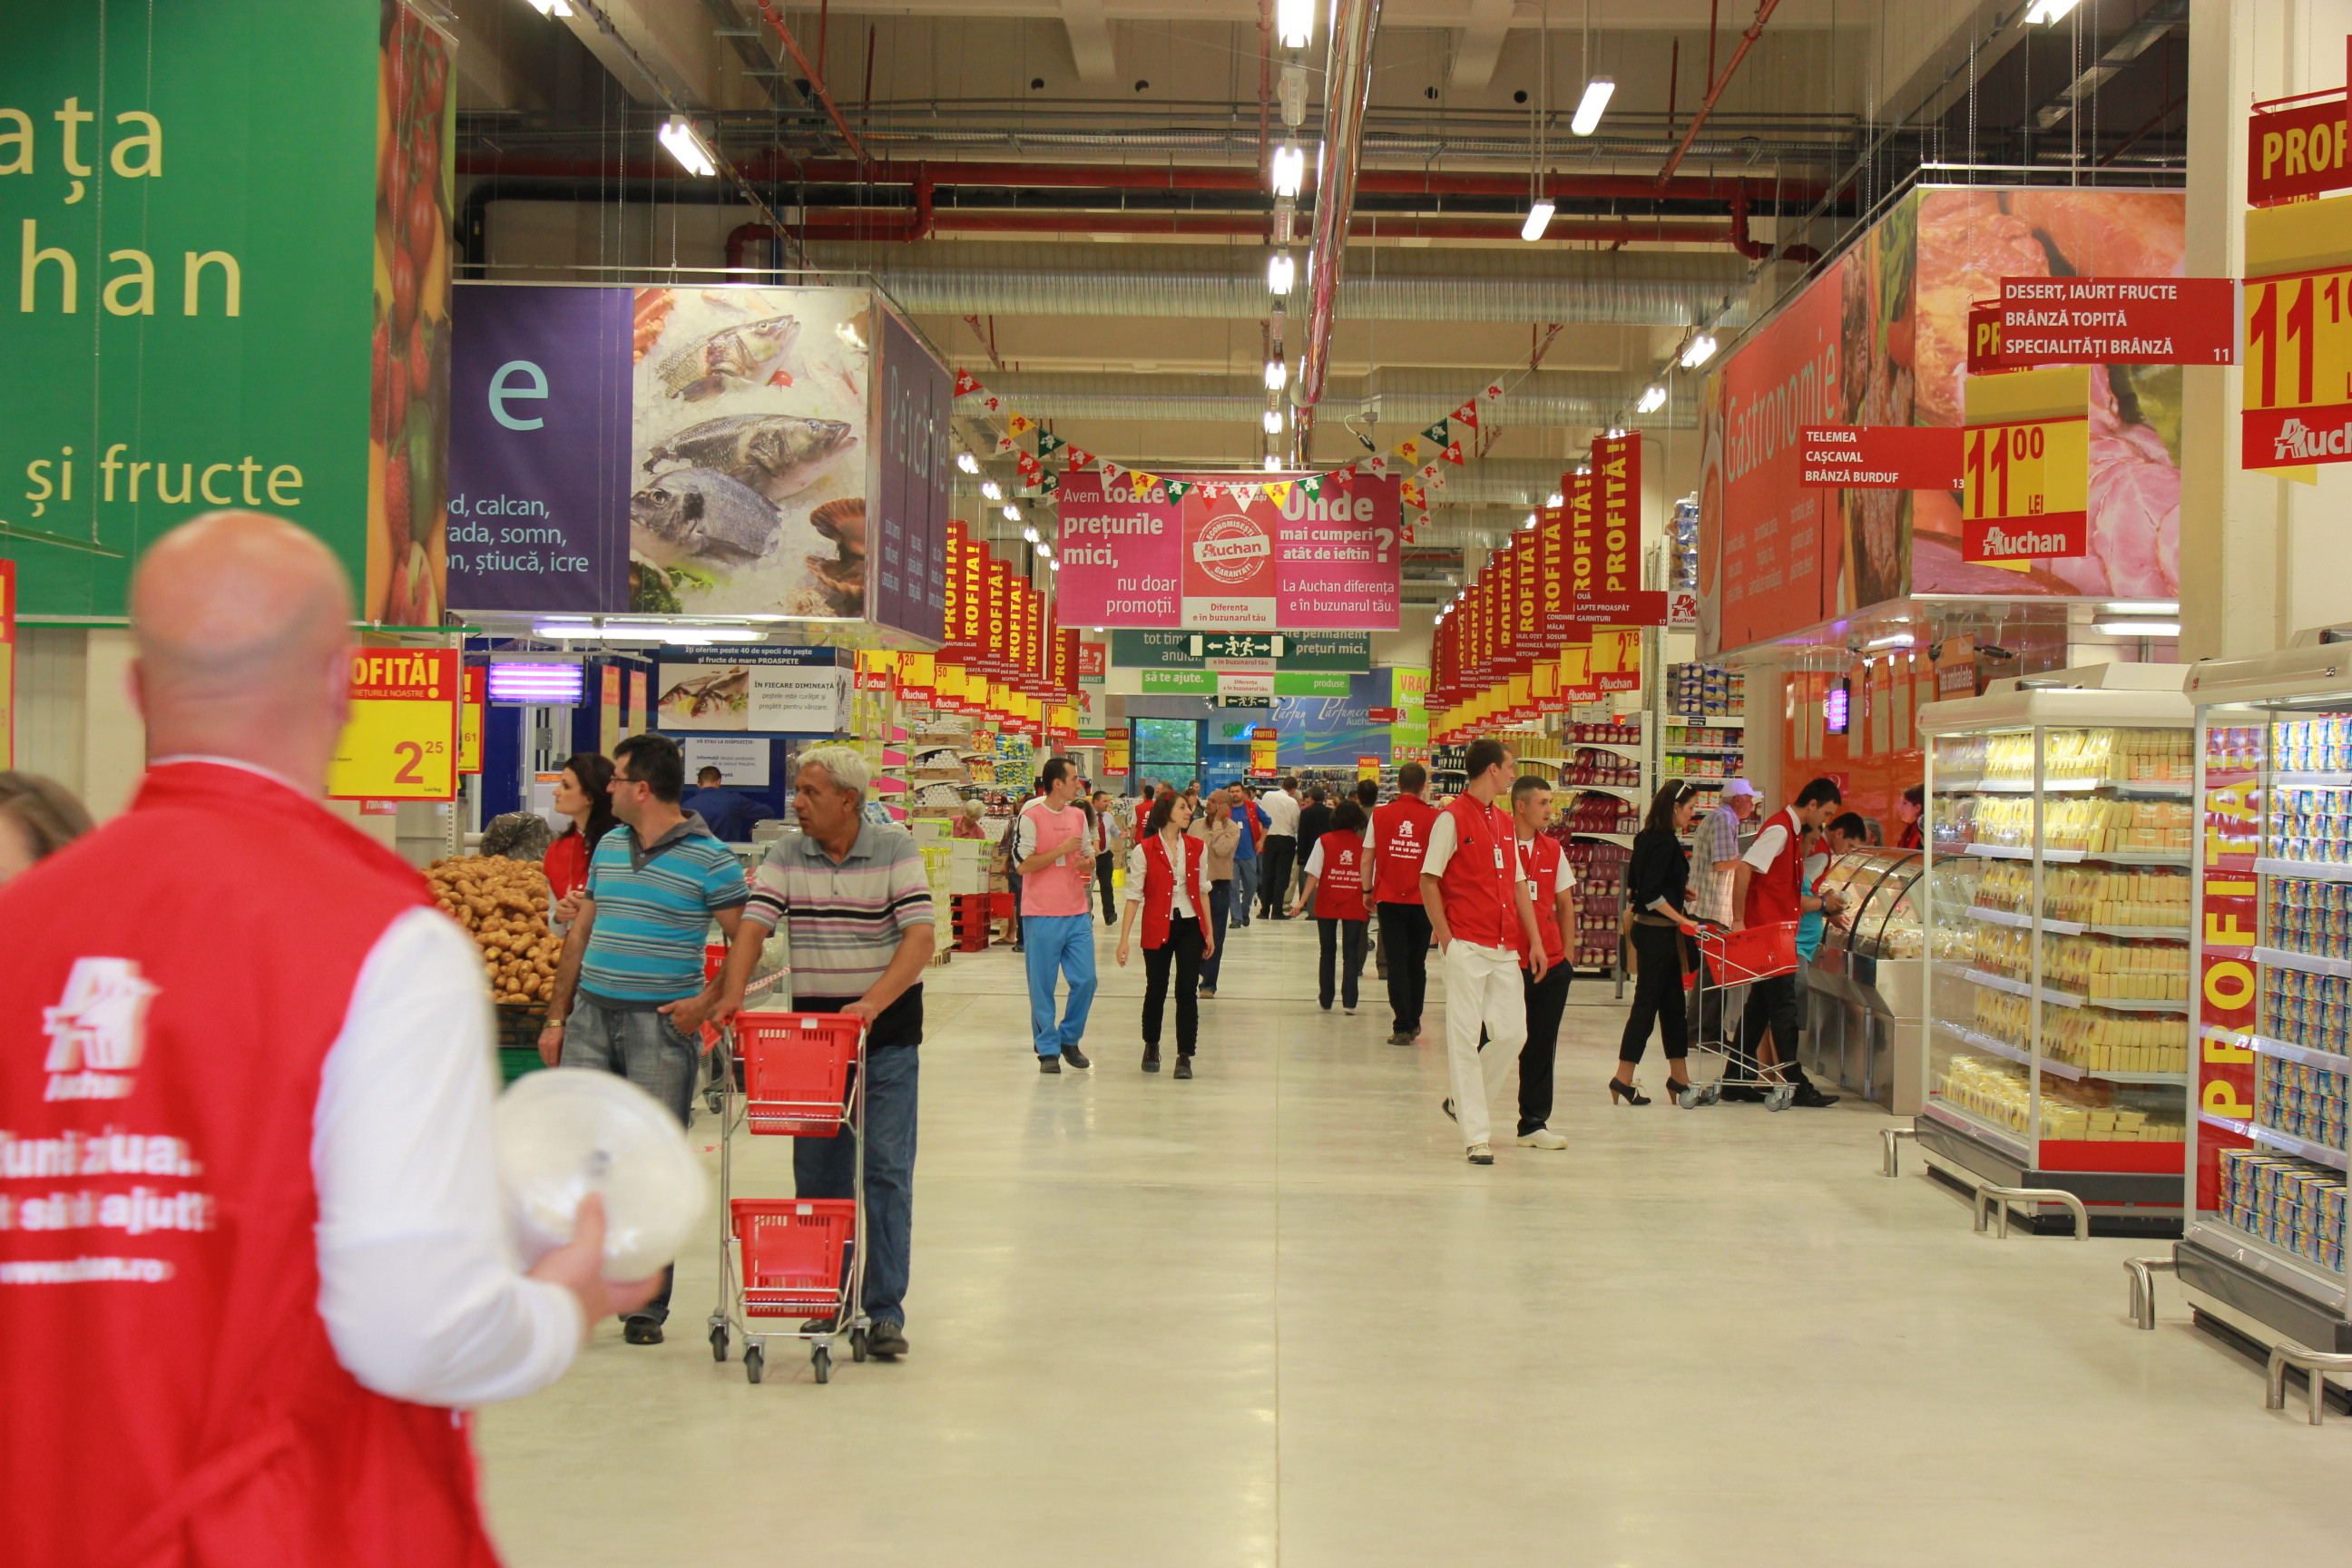 Frederic bellon auchan romania to boost turnover in 2014 for Email auchan